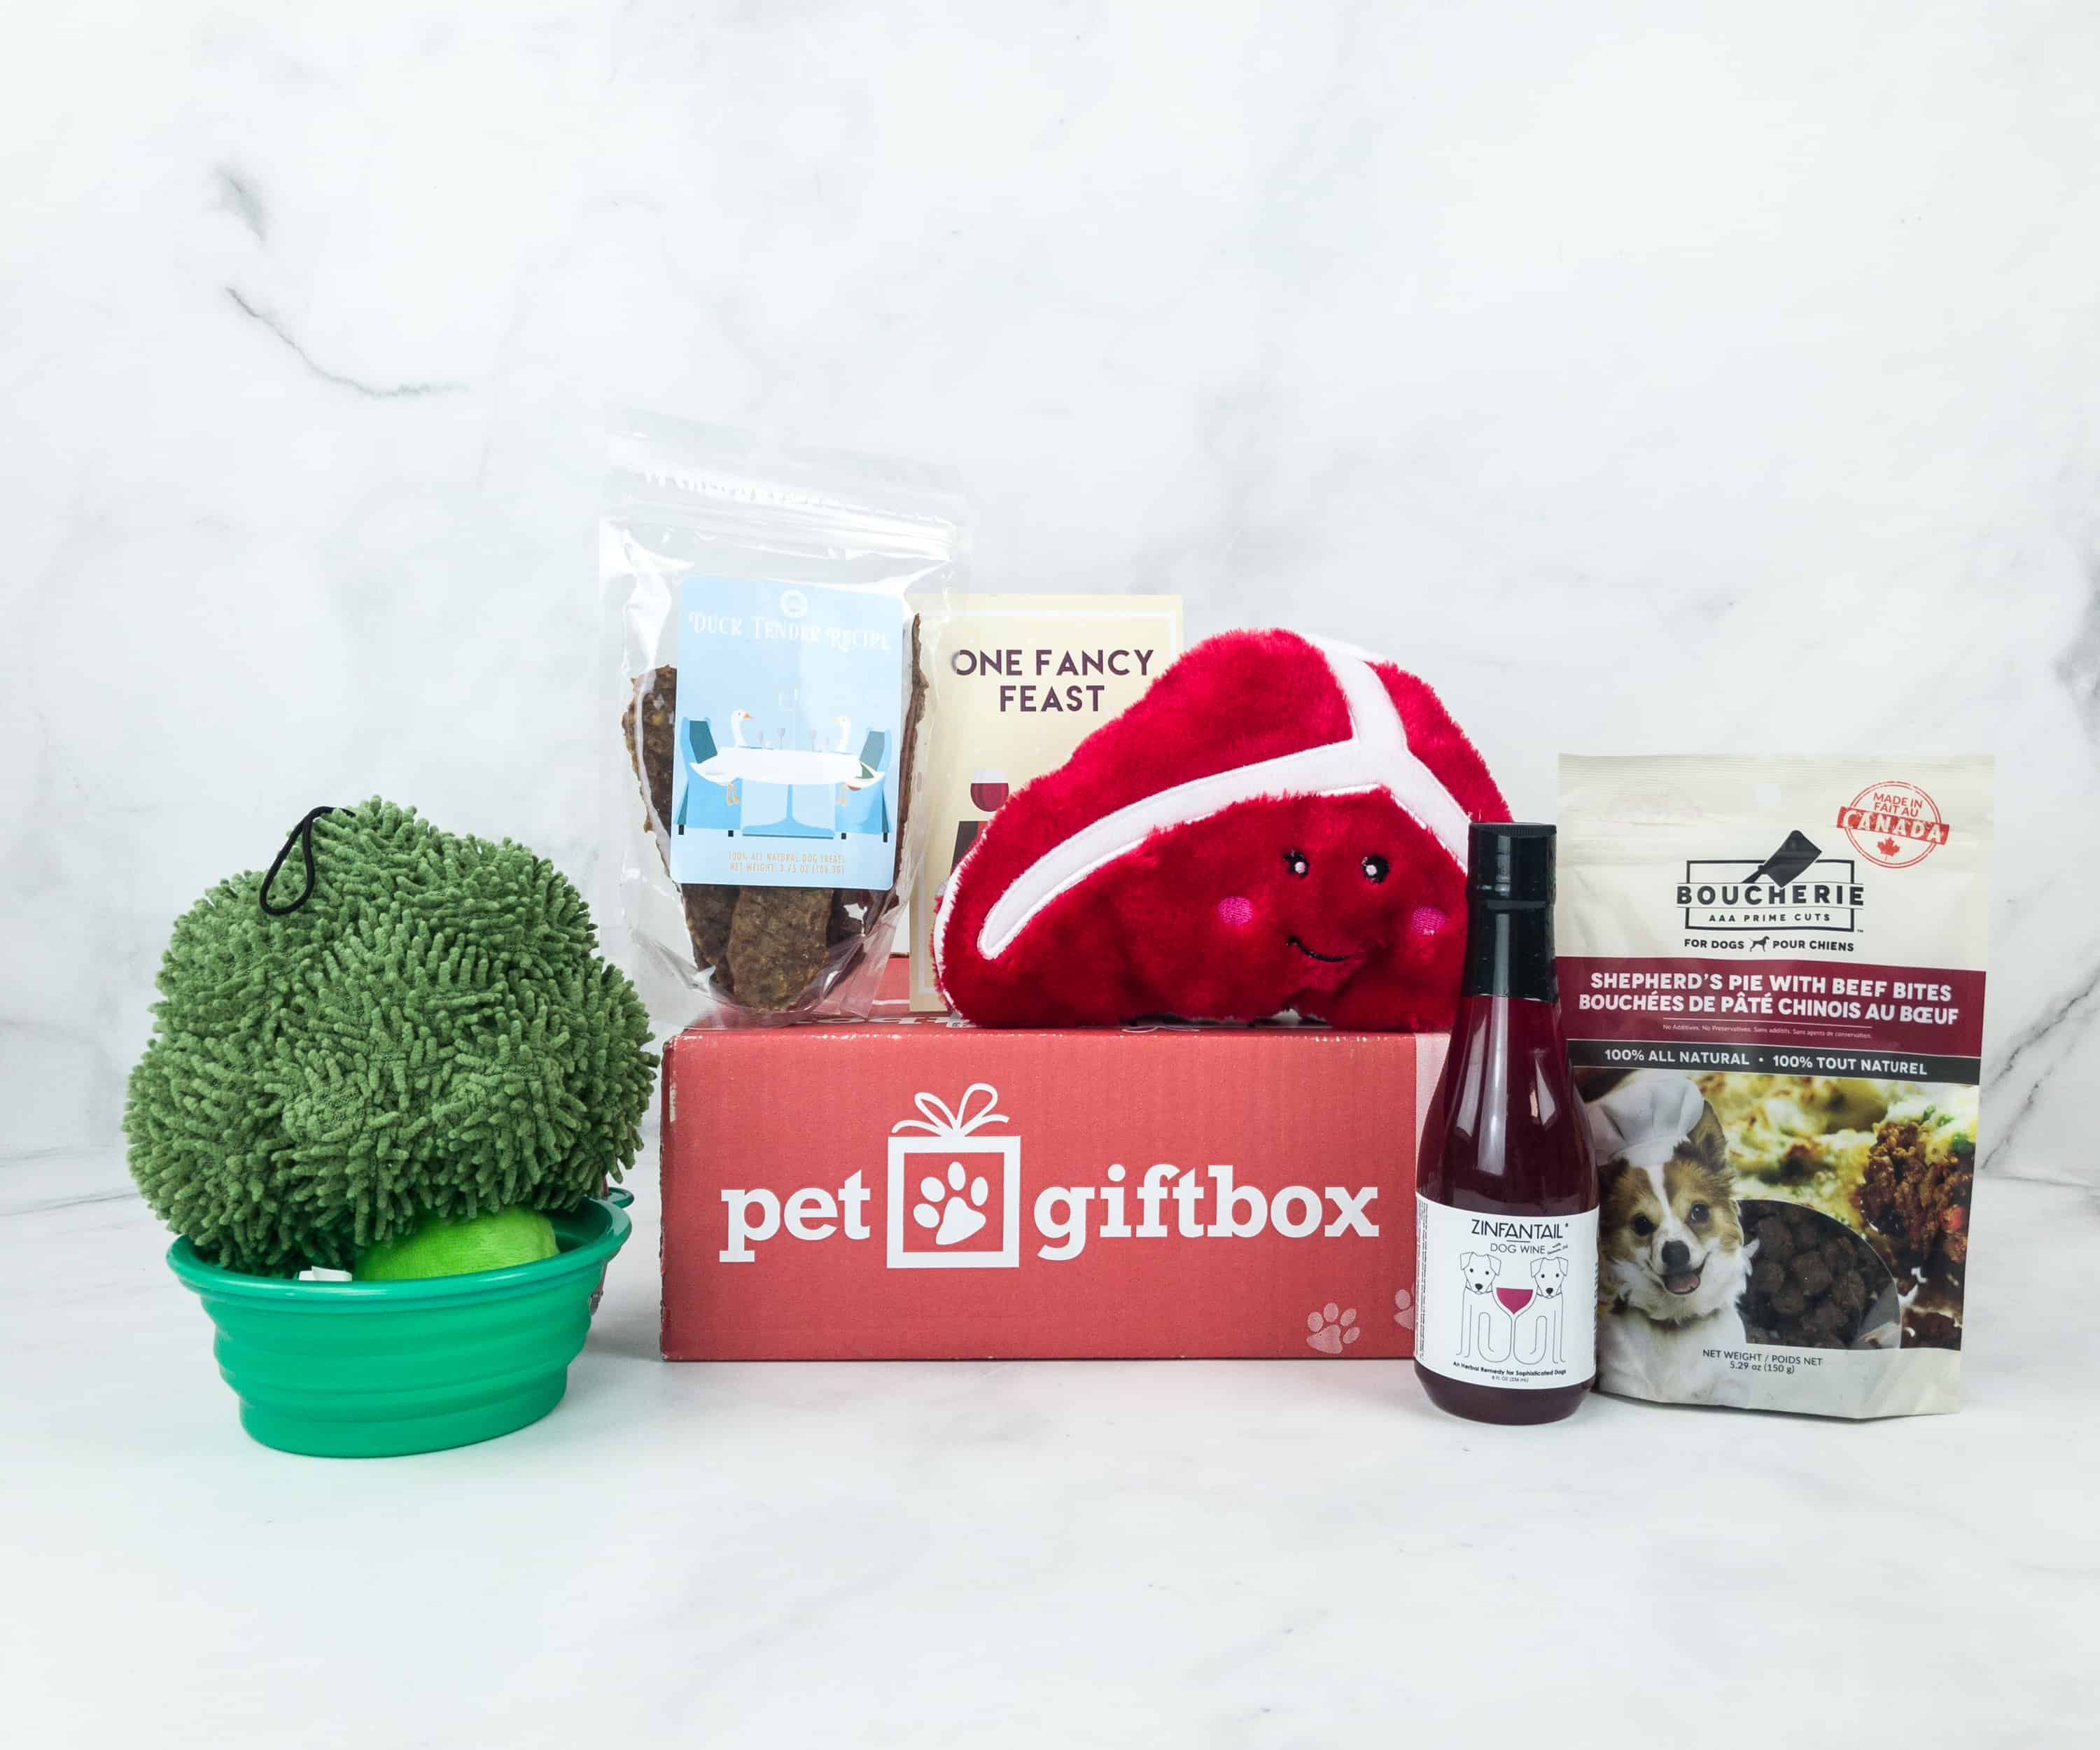 PetGiftBox November 2018 Subscription Box Review + 50% Off Coupon